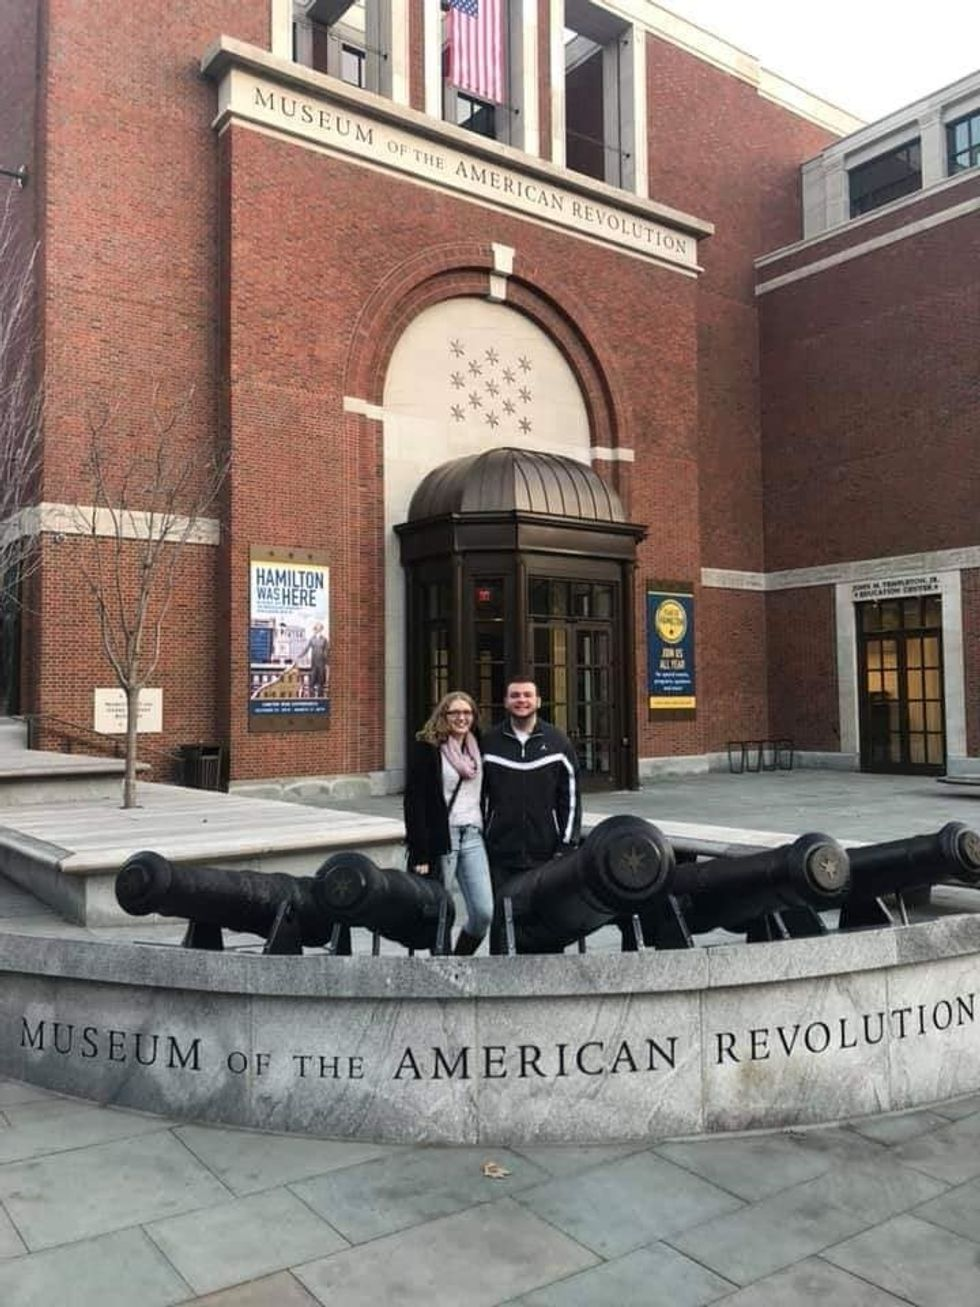 Even If You're Not A History Buff, You Should Visit The Museum Of The American Revolution